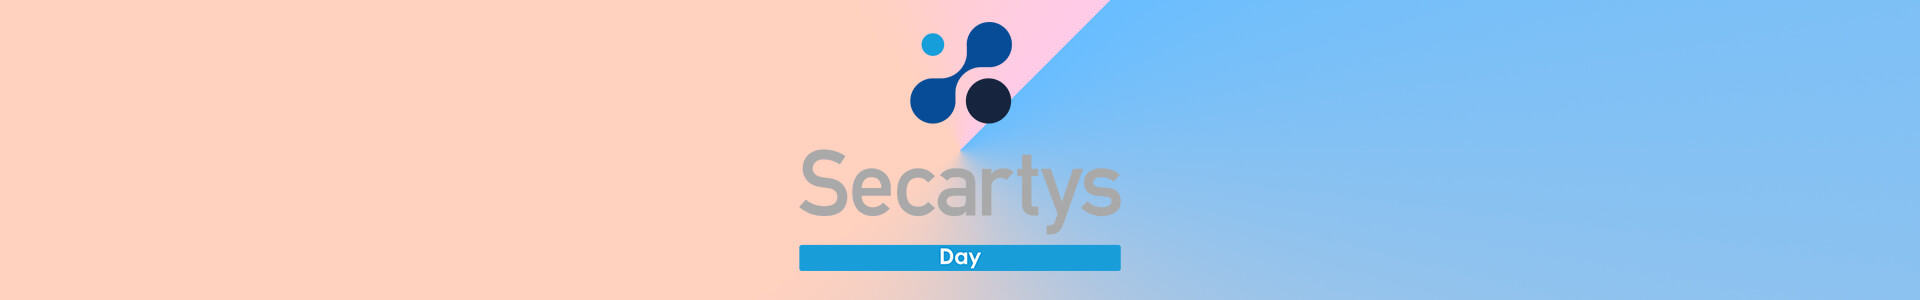 Inscripciones Secartys Day